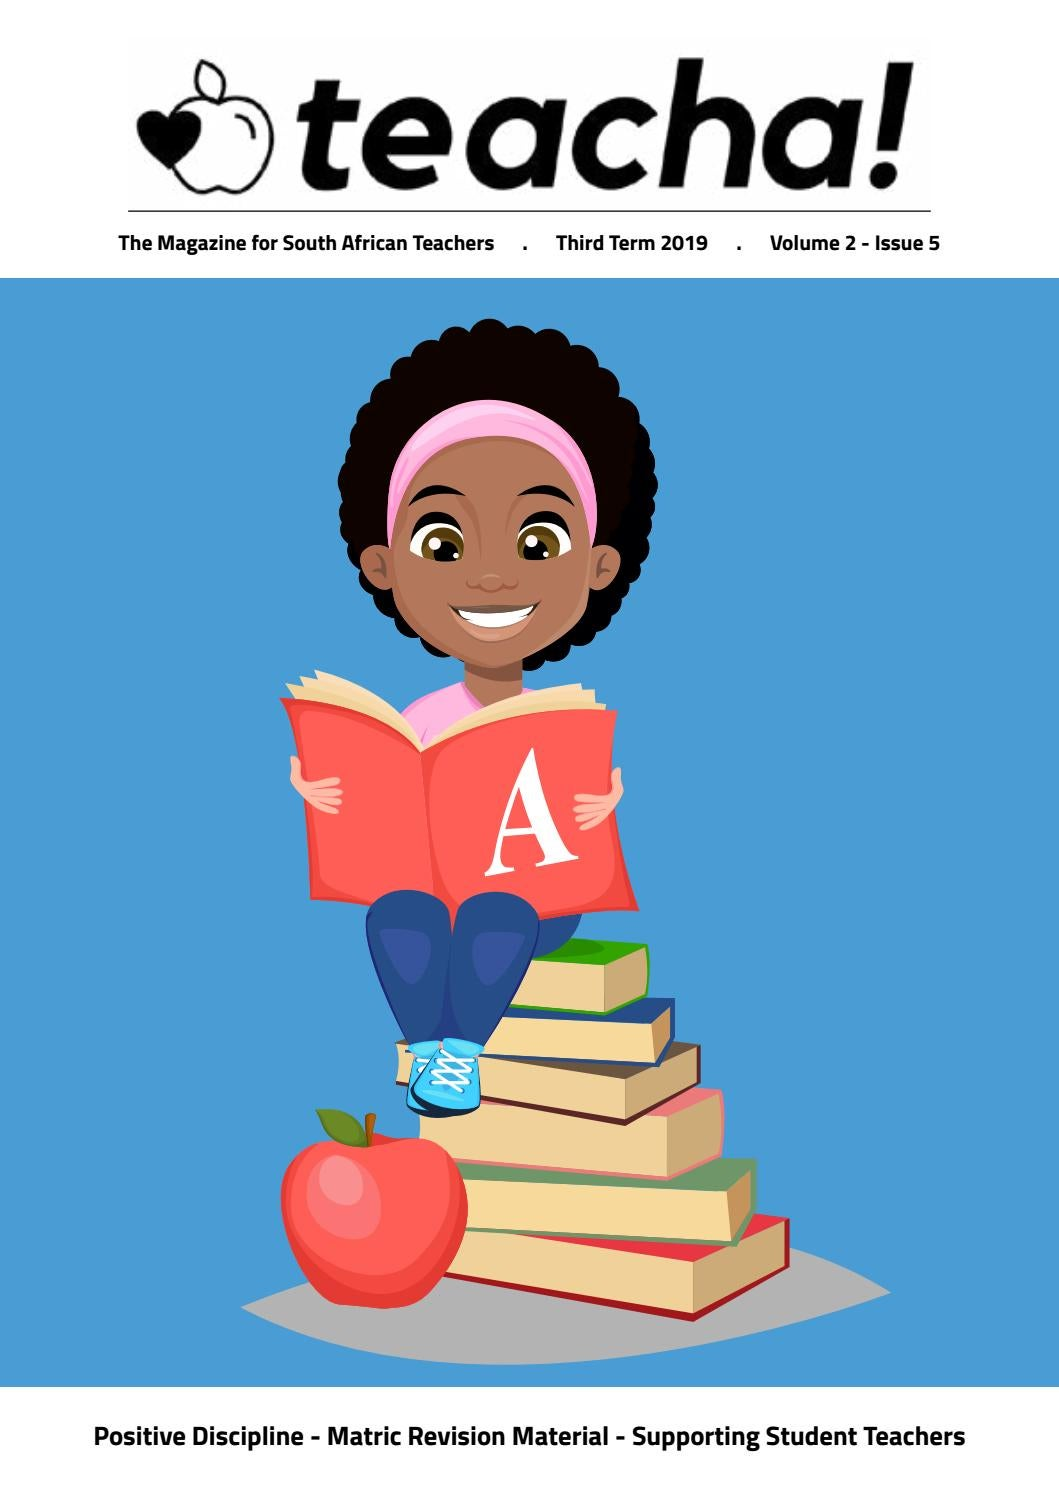 sace south africa_Teacha! Magazine - Term 3 2019 by Teacha! Magazine - Issuu